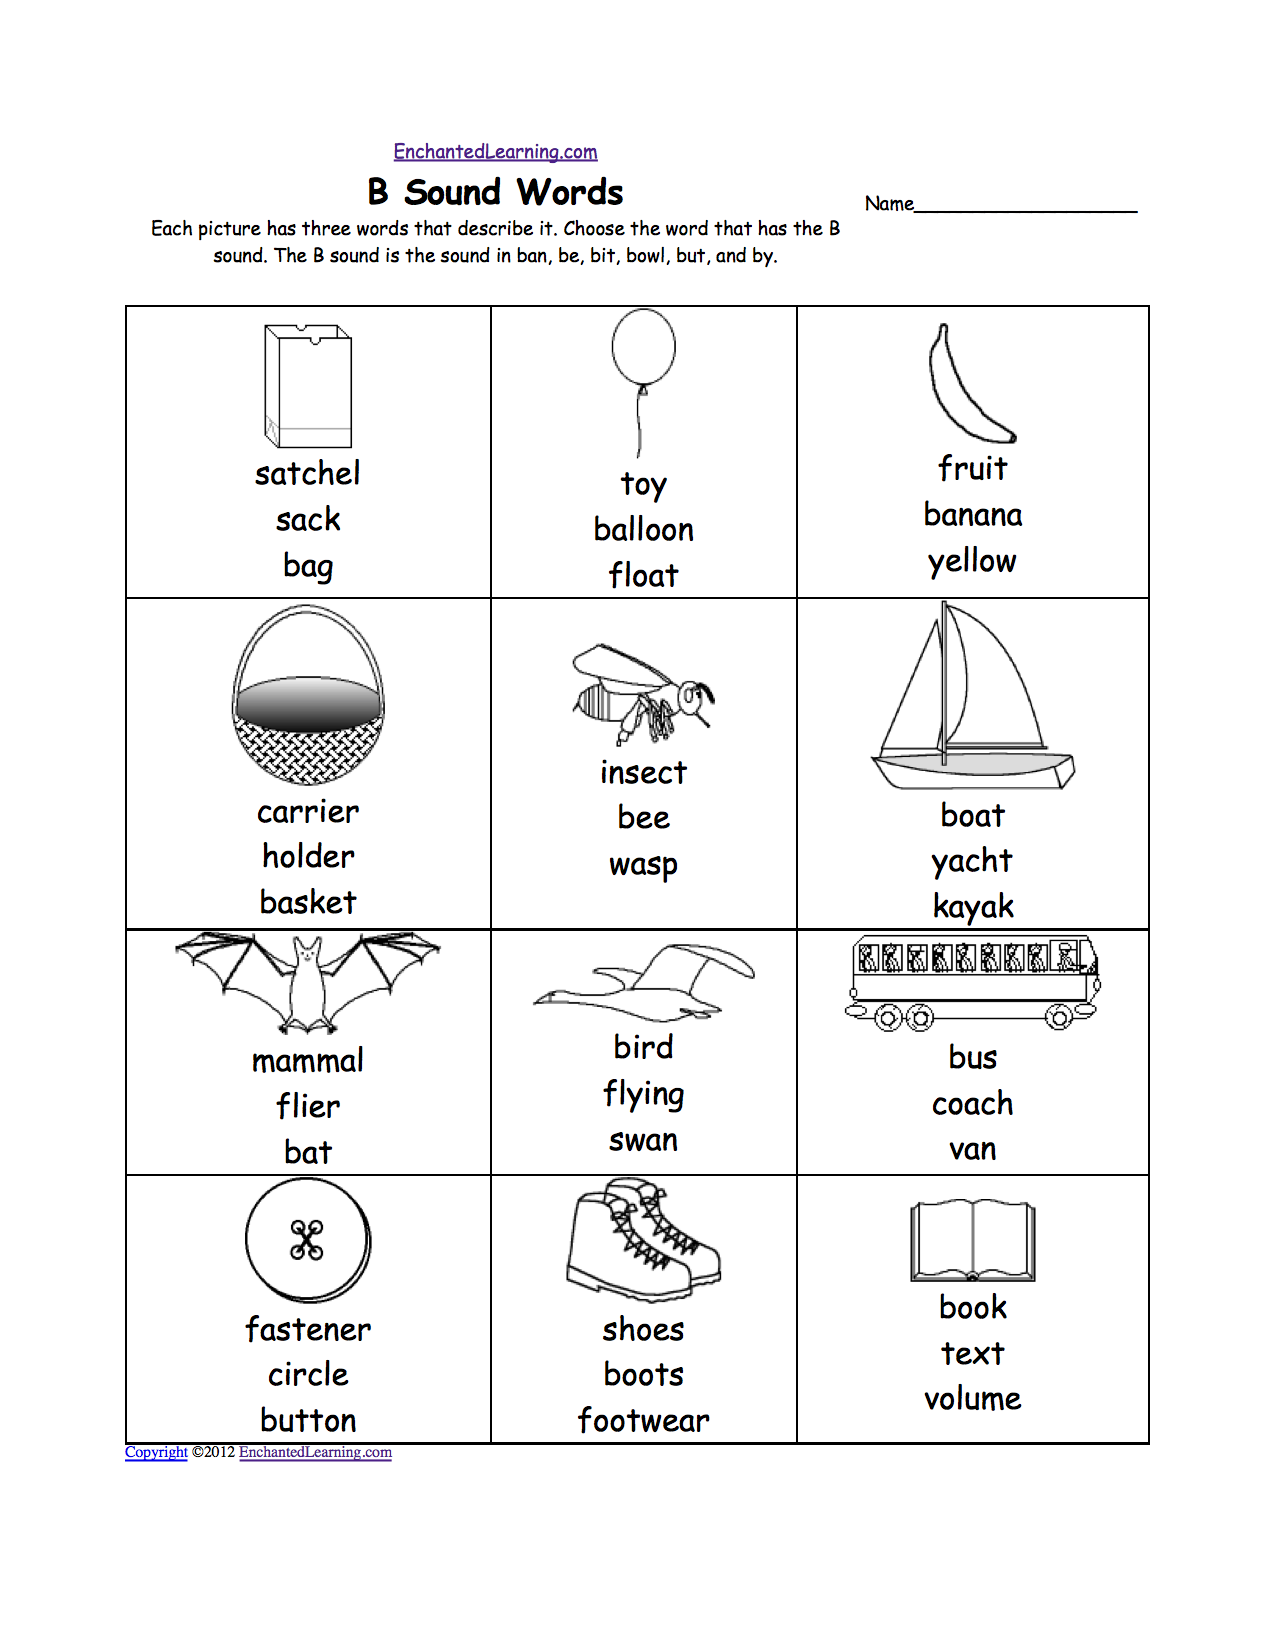 worksheet Letter B Worksheet letter b alphabet activities at enchantedlearning com br sound phonics worksheet multiple choice each picture has three words that describe it choose the word a sound